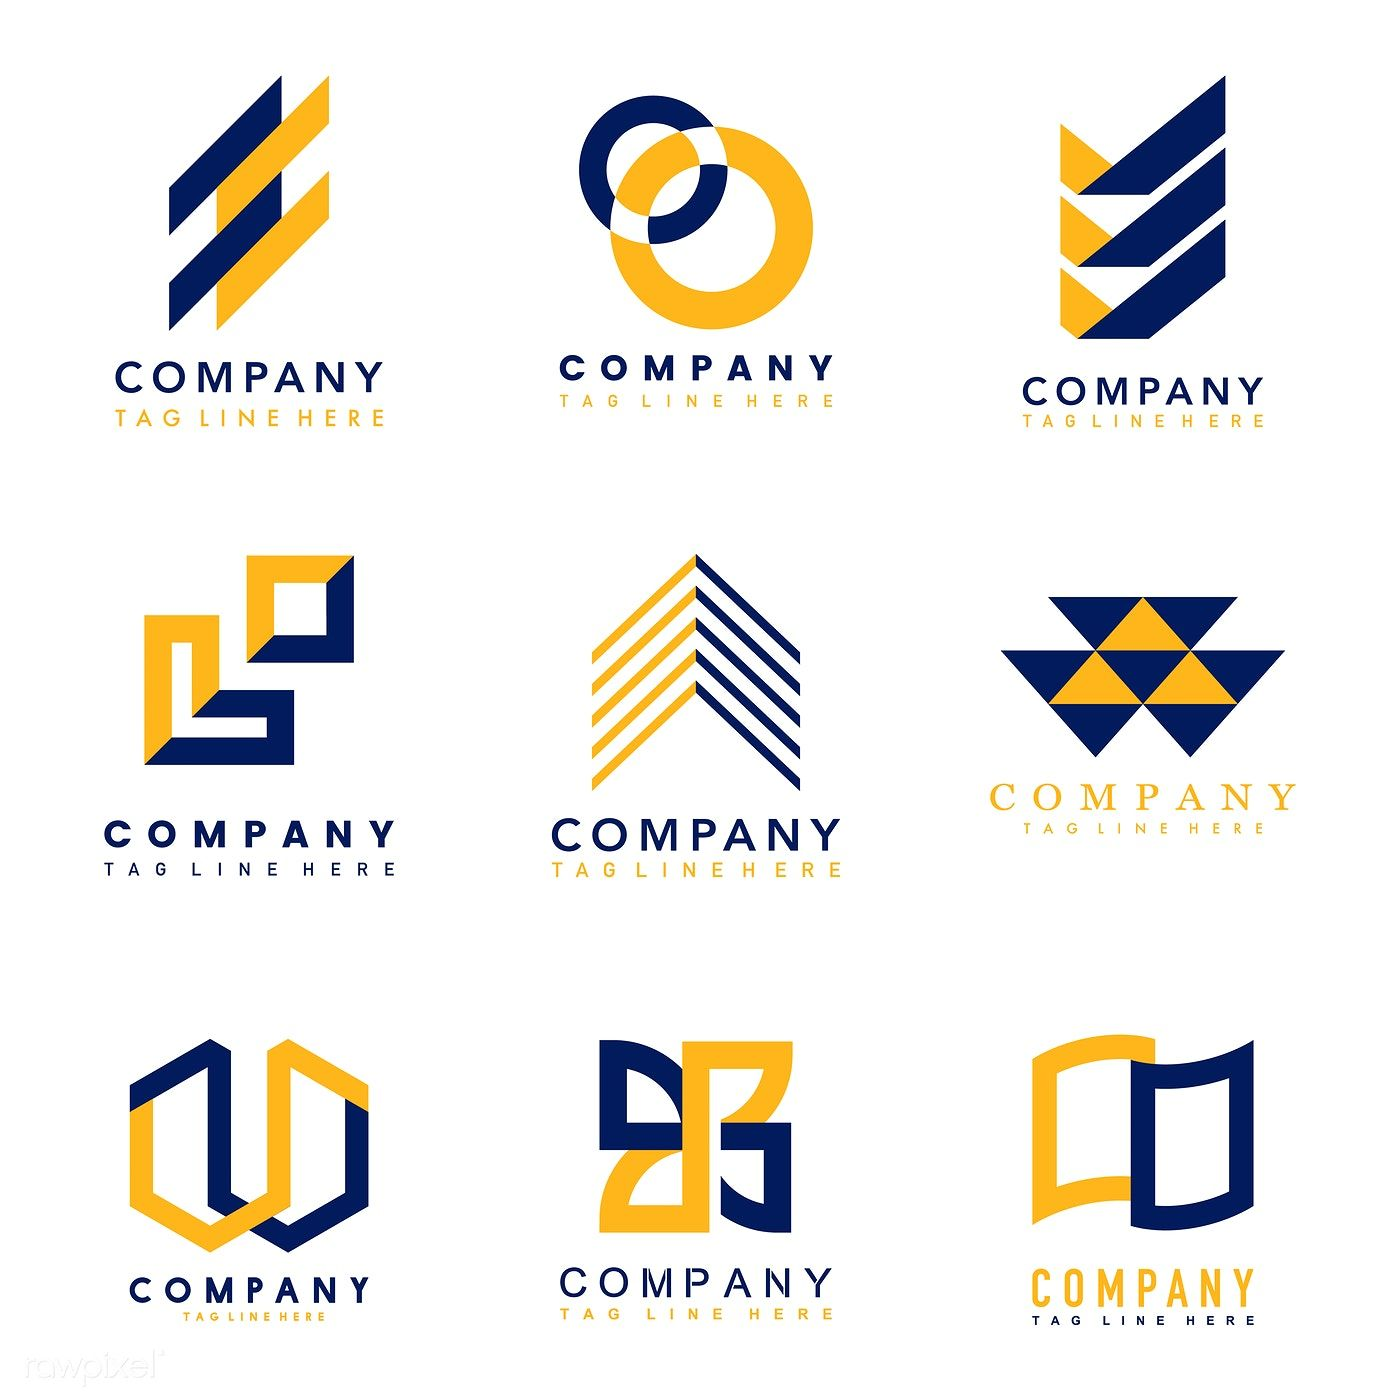 Download premium vector of Set of company logo design